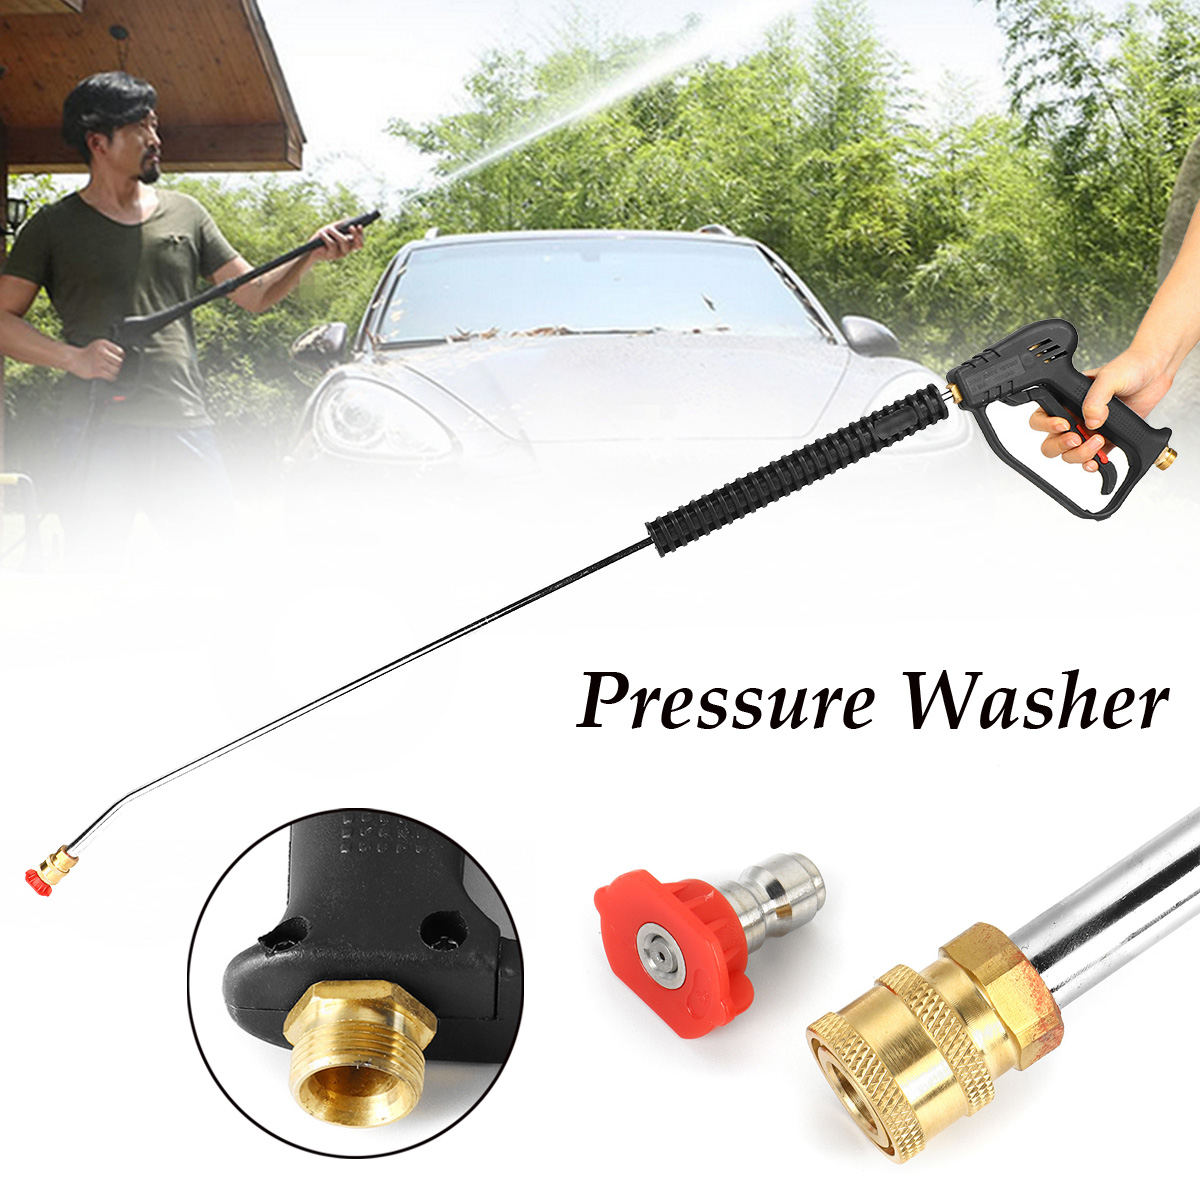 New 1065mm Car Pressure Washer Spray-Gun Wand Lance Nozzle Tips M22 Quick Connector Kit for Car Washing Tool car washer water spray gun lance nozzle high pressure cleaner washers